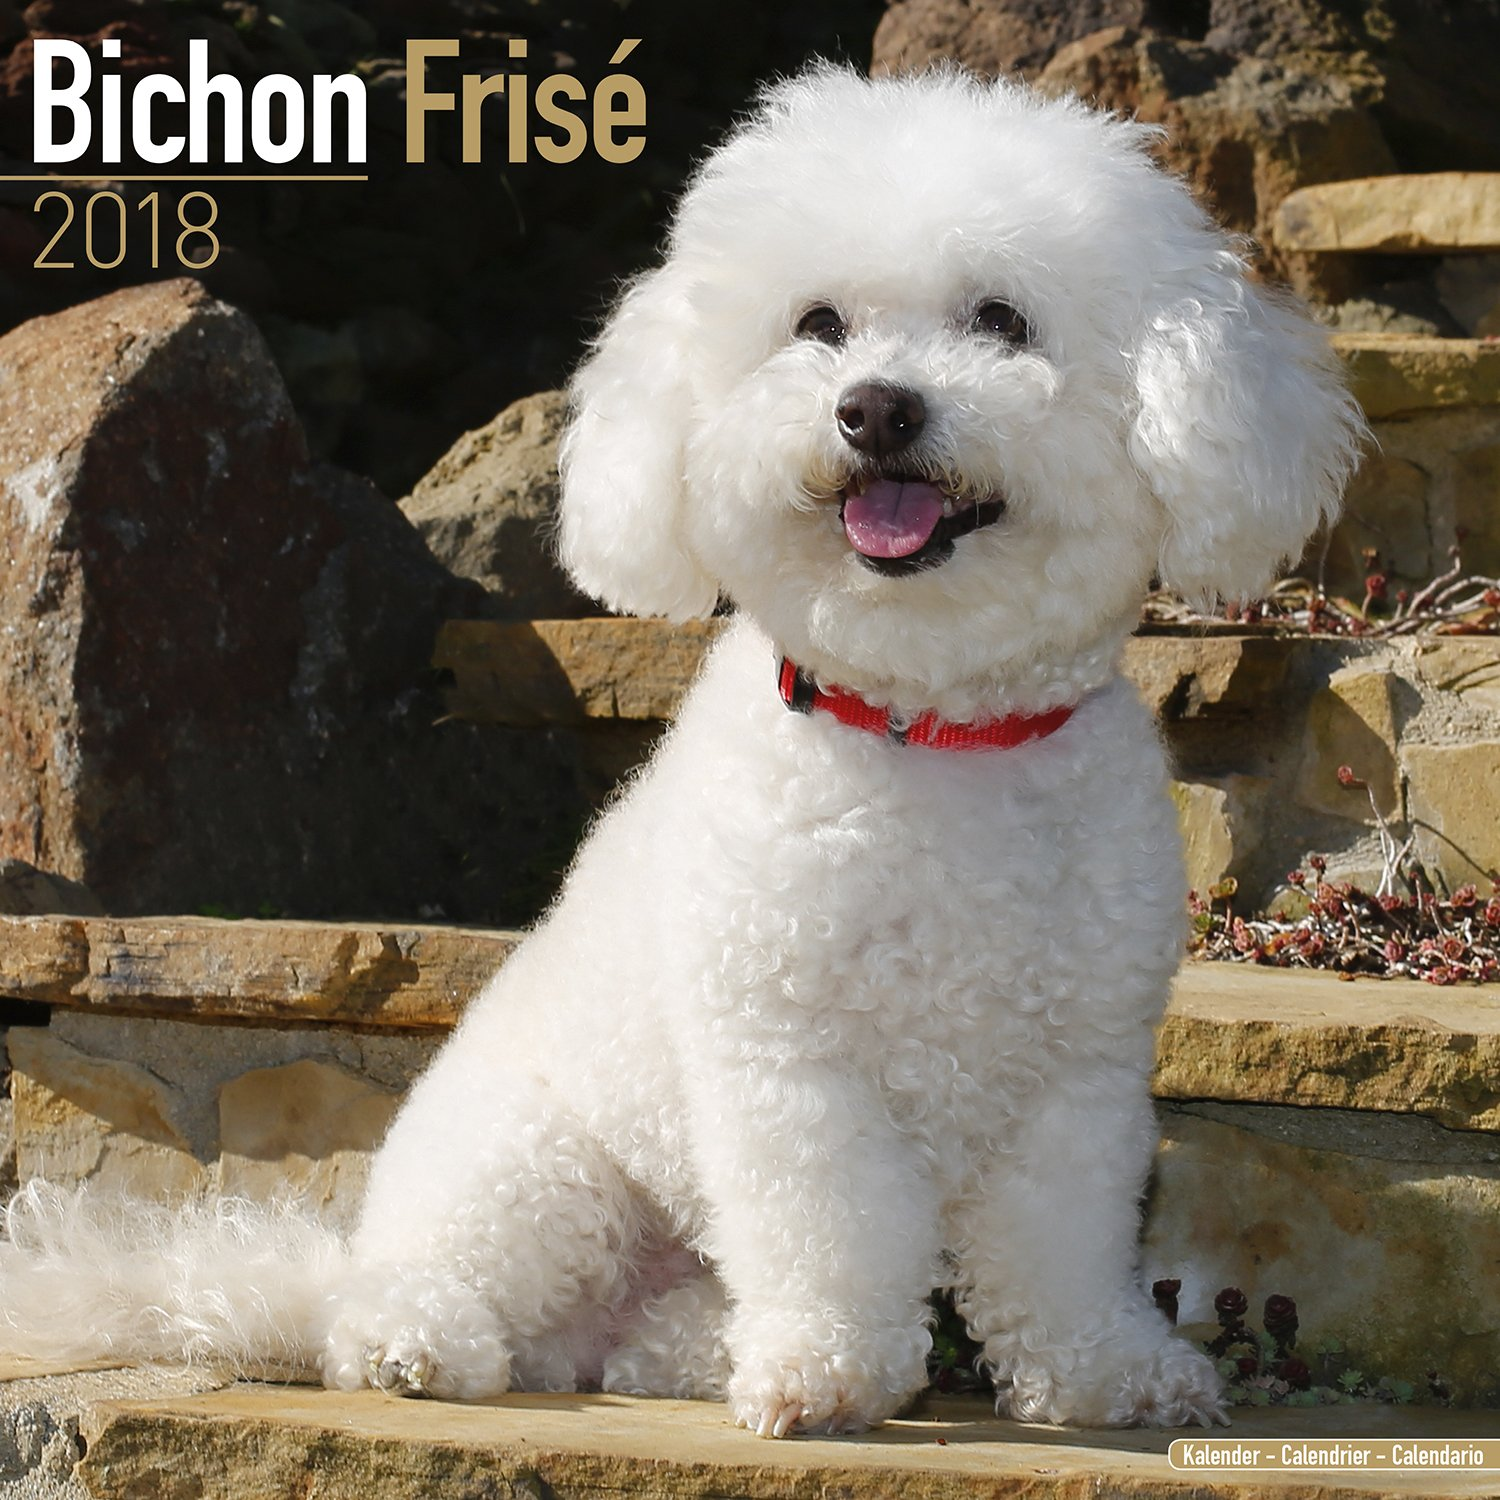 bichon frise calendar dog breed calendars 2017 2018 wall